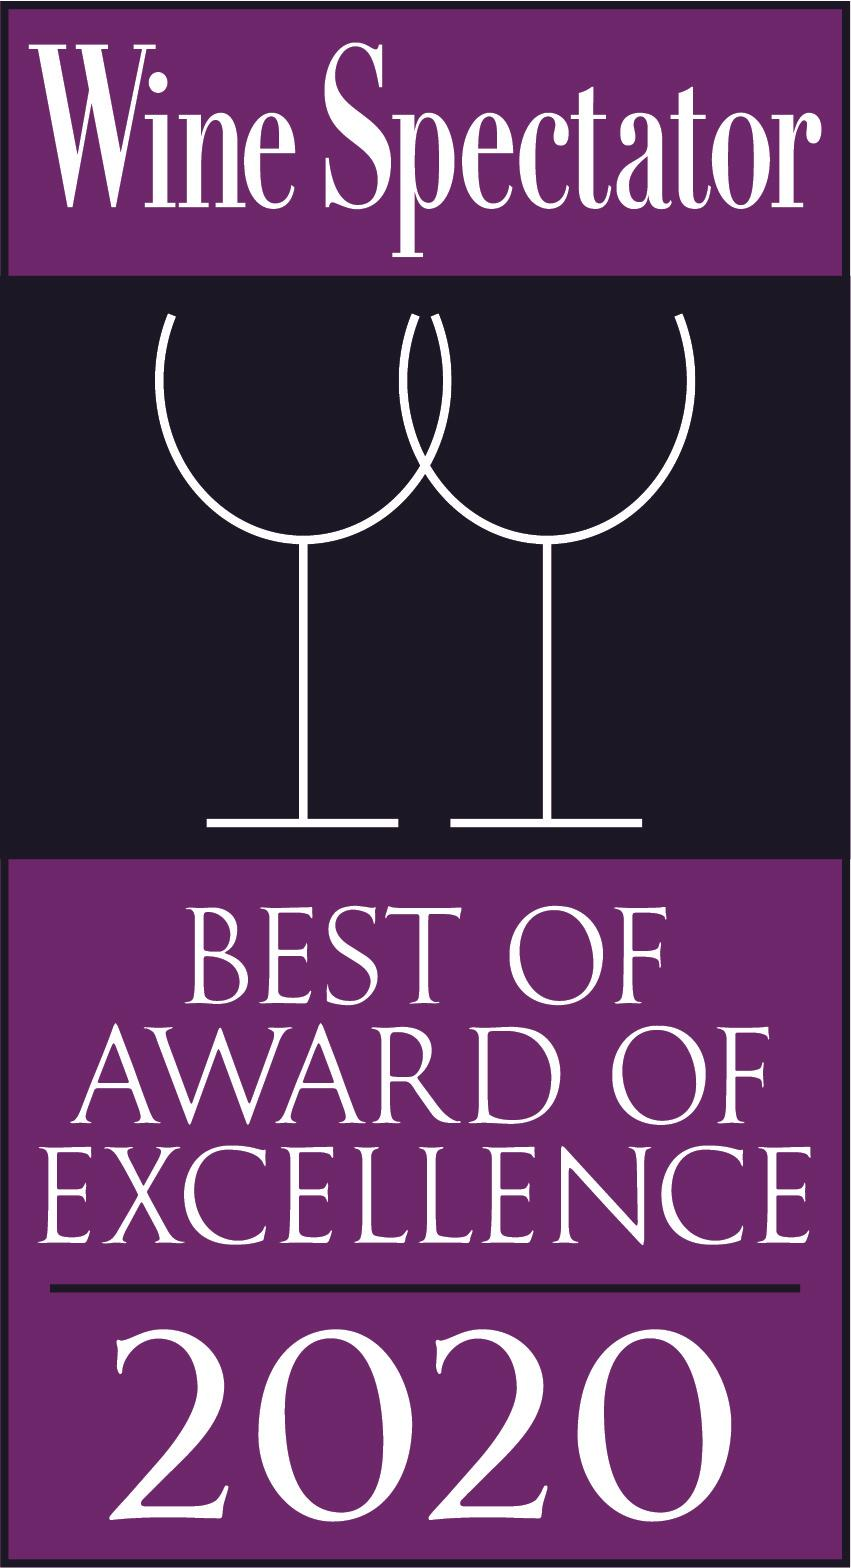 Wine Spectator 2020 - Best of award of excellence